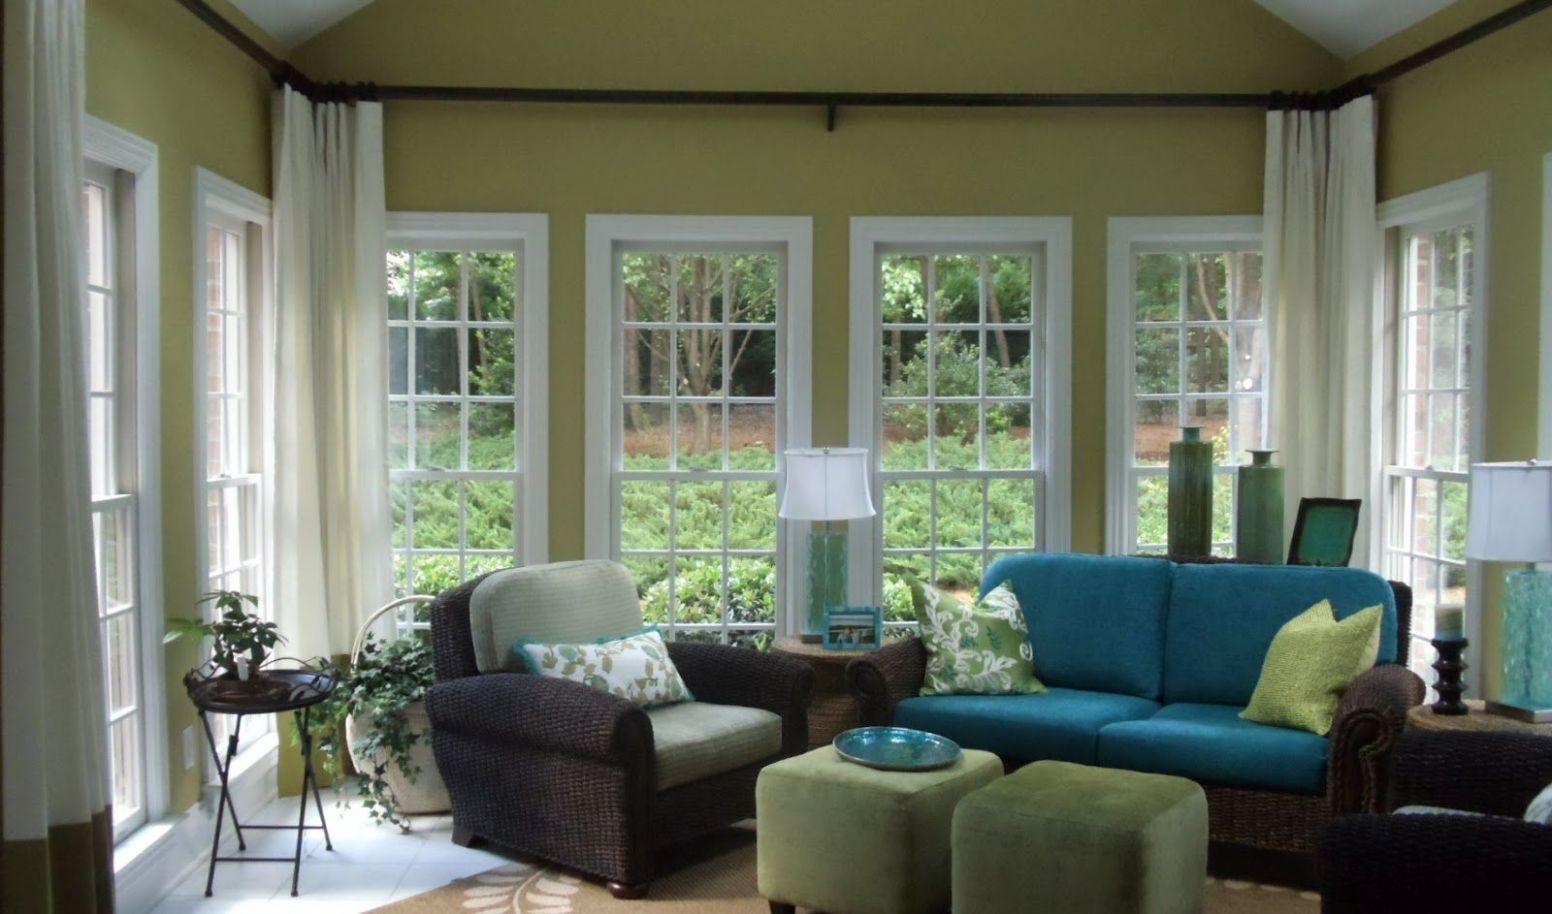 Sunroom makeover: On my list - love the higher curtain. Interior ...